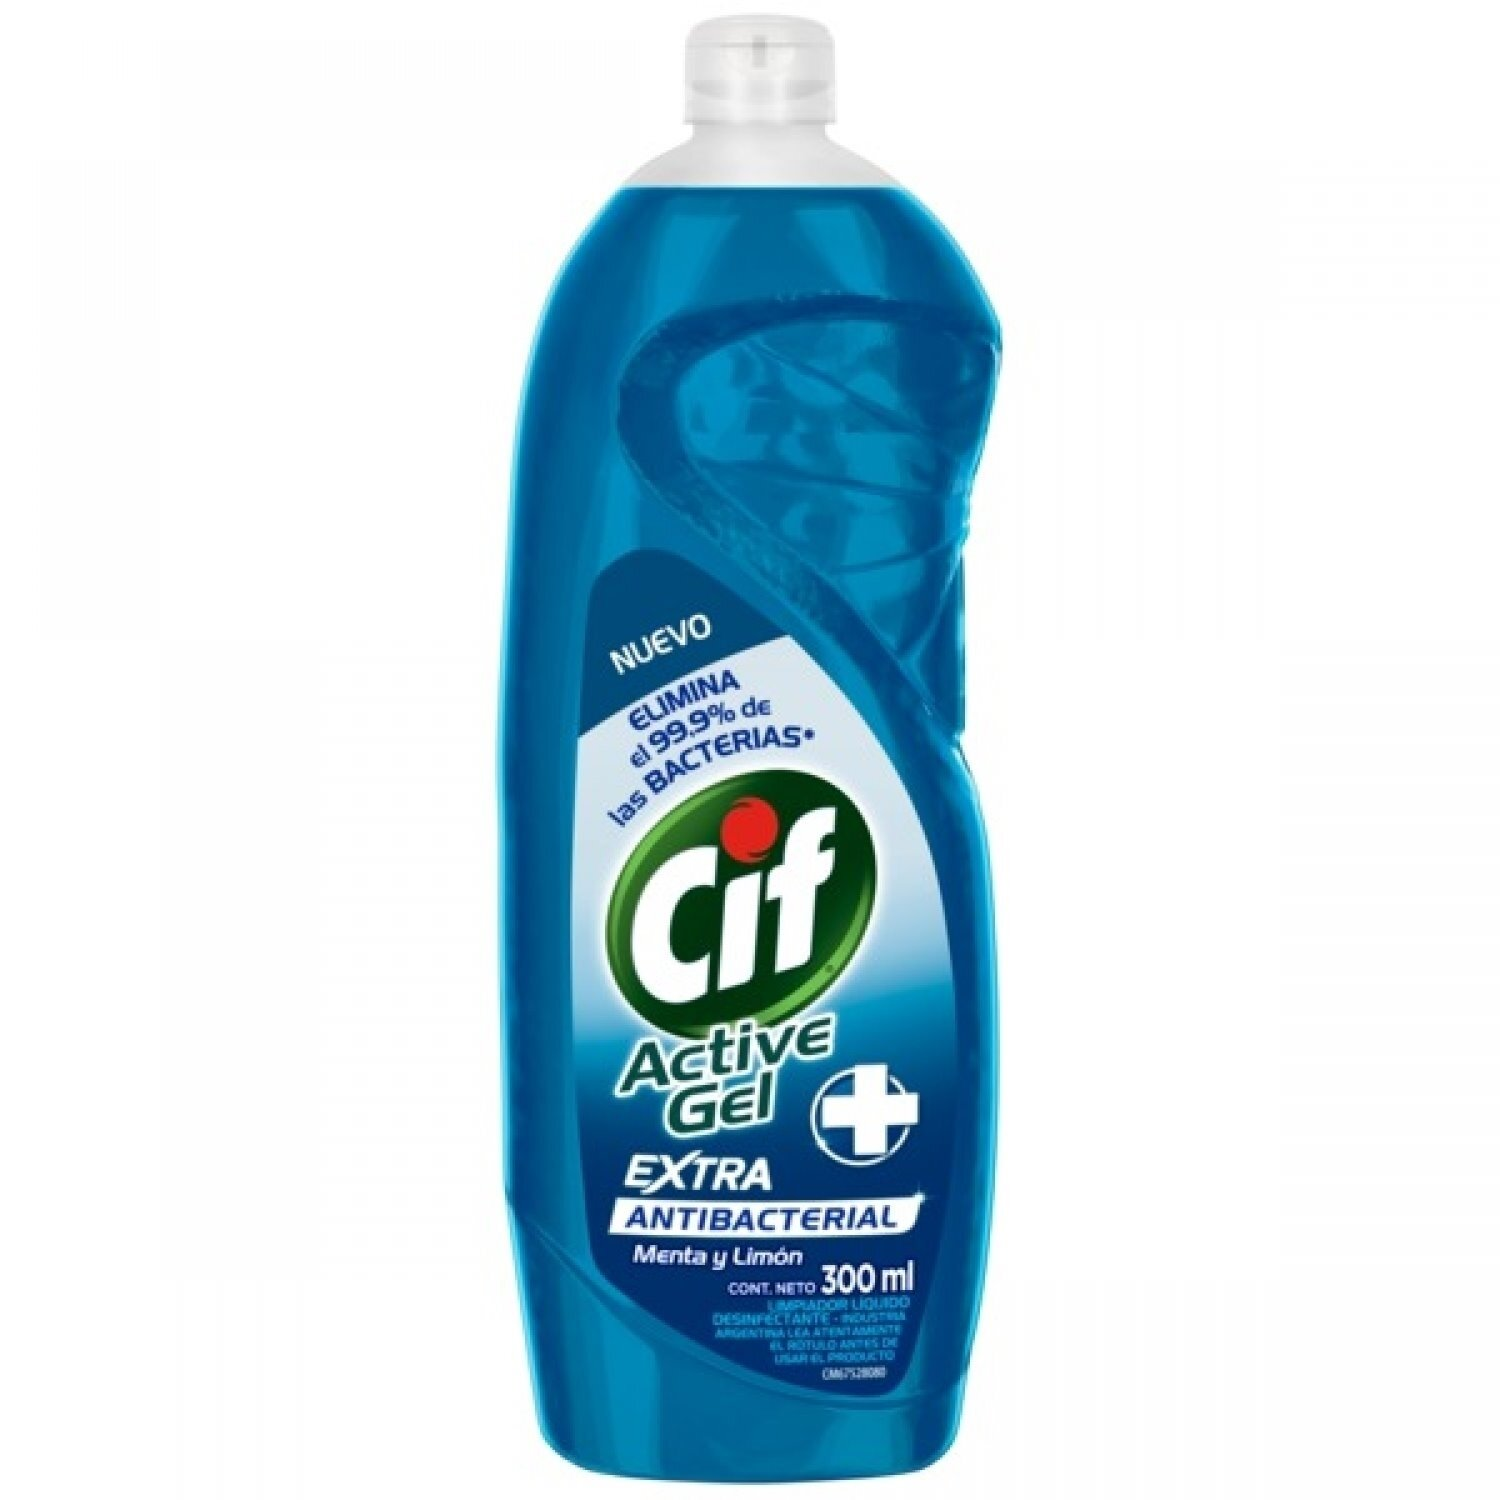 CIF ACTIVE GEL LV VAJ ANTIB  x 300ML